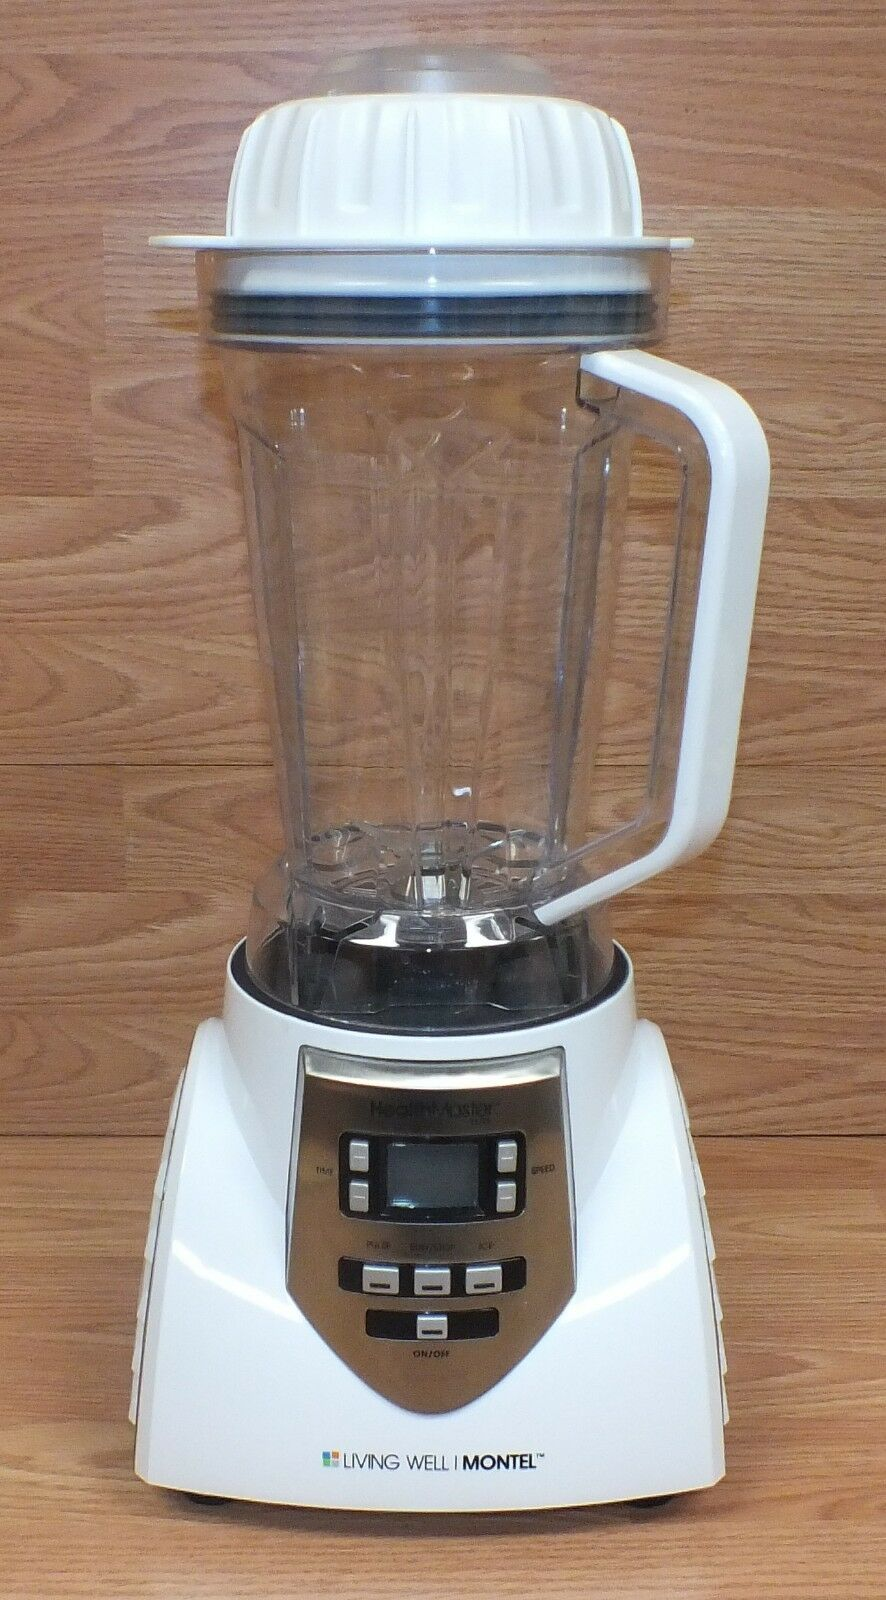 Living Well Montel Health Master Elite (JLA-8) blanc 8 Speed 2.2Qt Blender READ